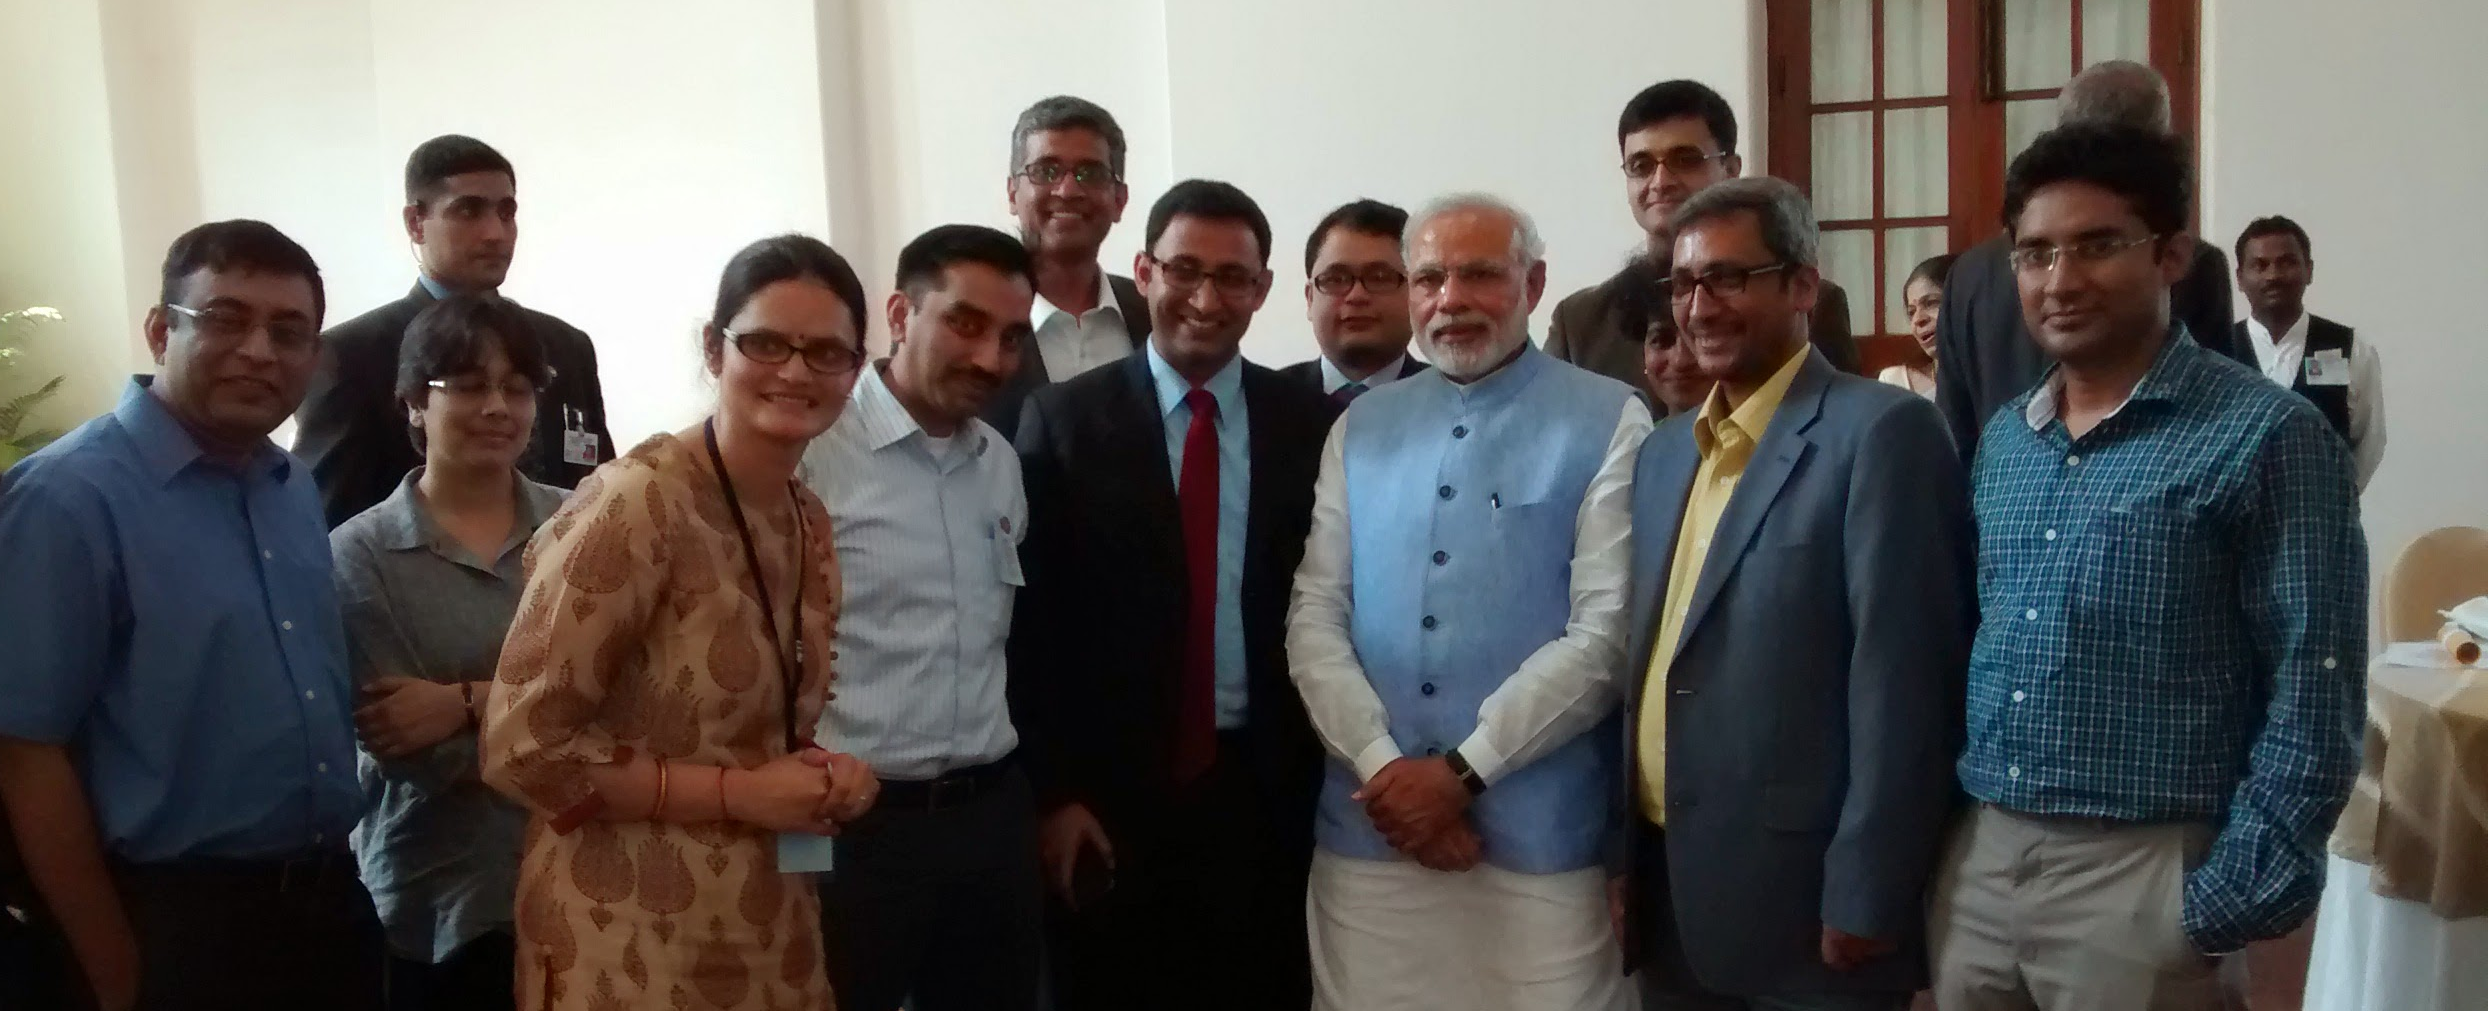 PM with Junior Faculty from IISc after Lunch